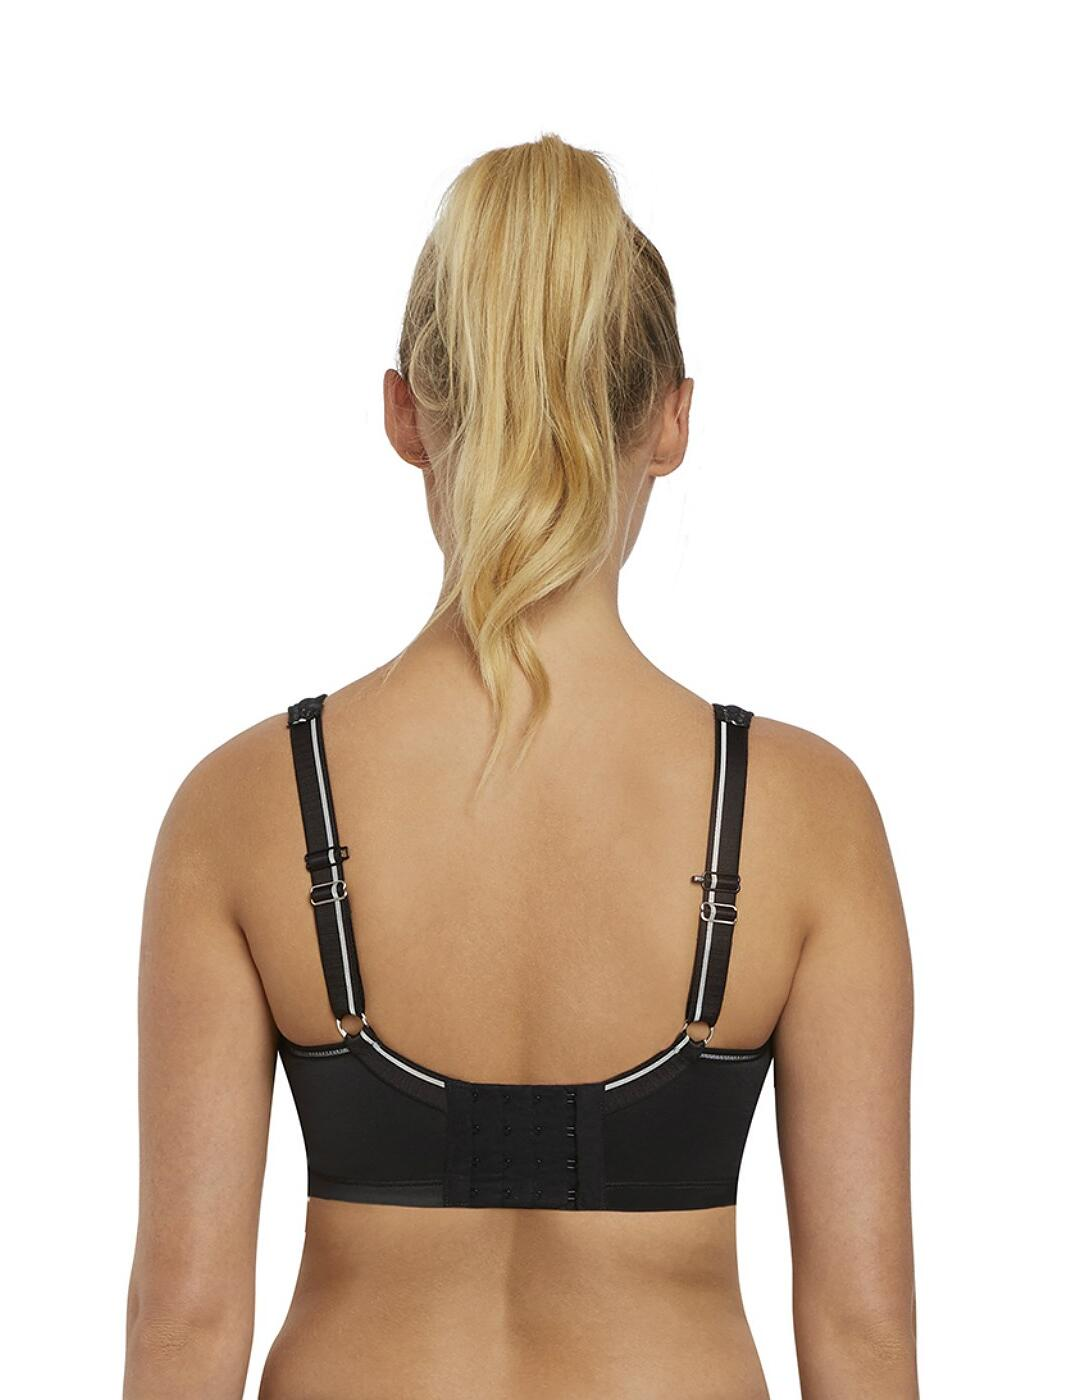 Freya-Active-Sports-Bra-Sonic-Underwired-Moulded-4892-Supportive-High-Impact thumbnail 3